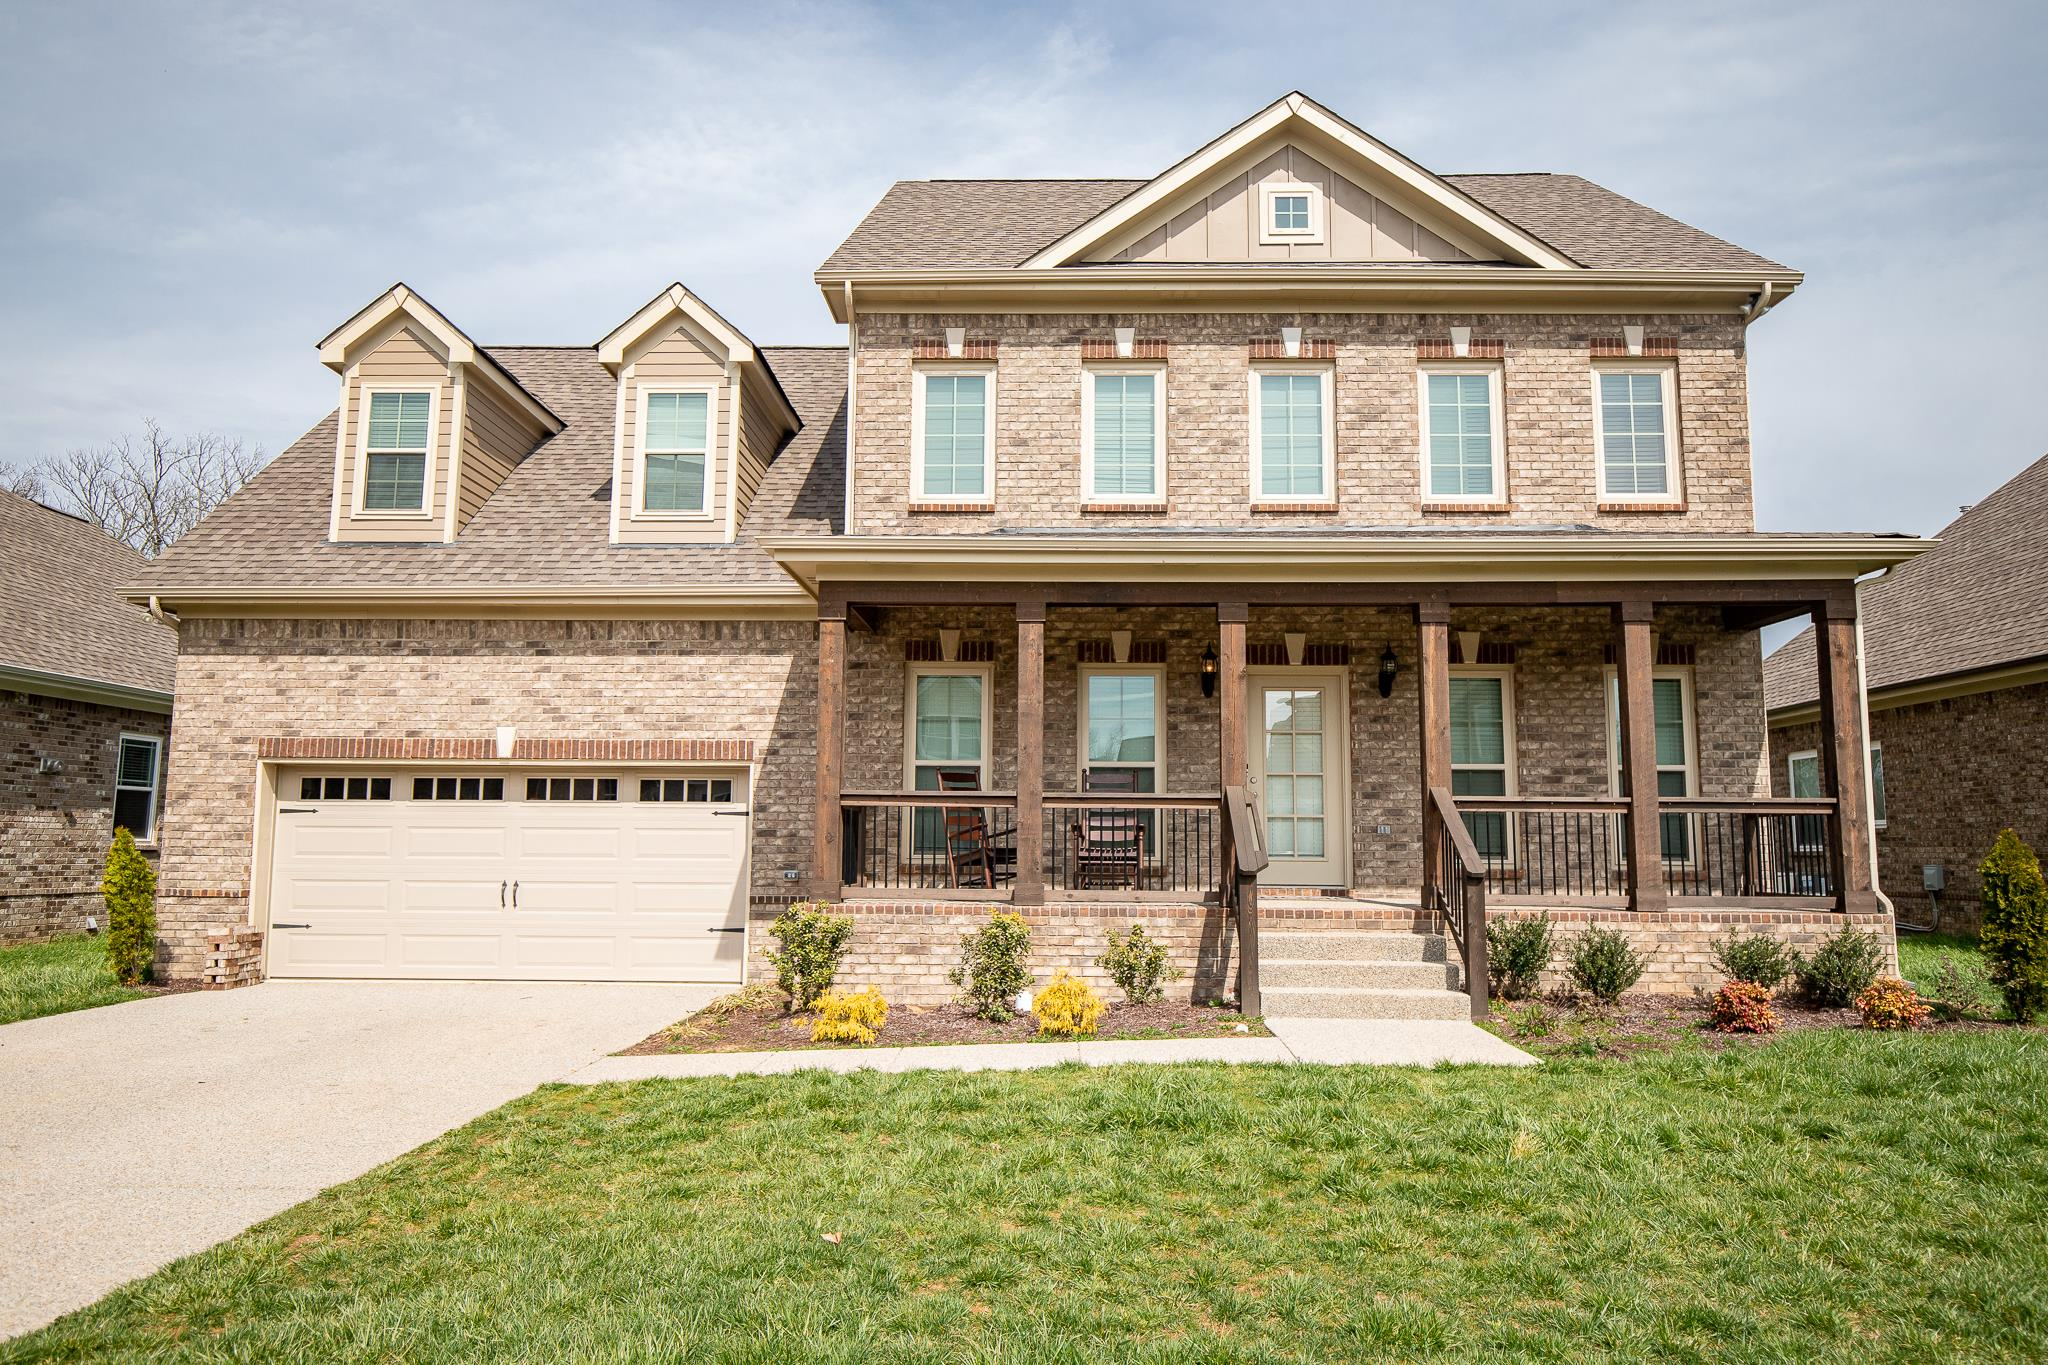 6009 Spade Dr Lot 195, Spring Hill, Tennessee